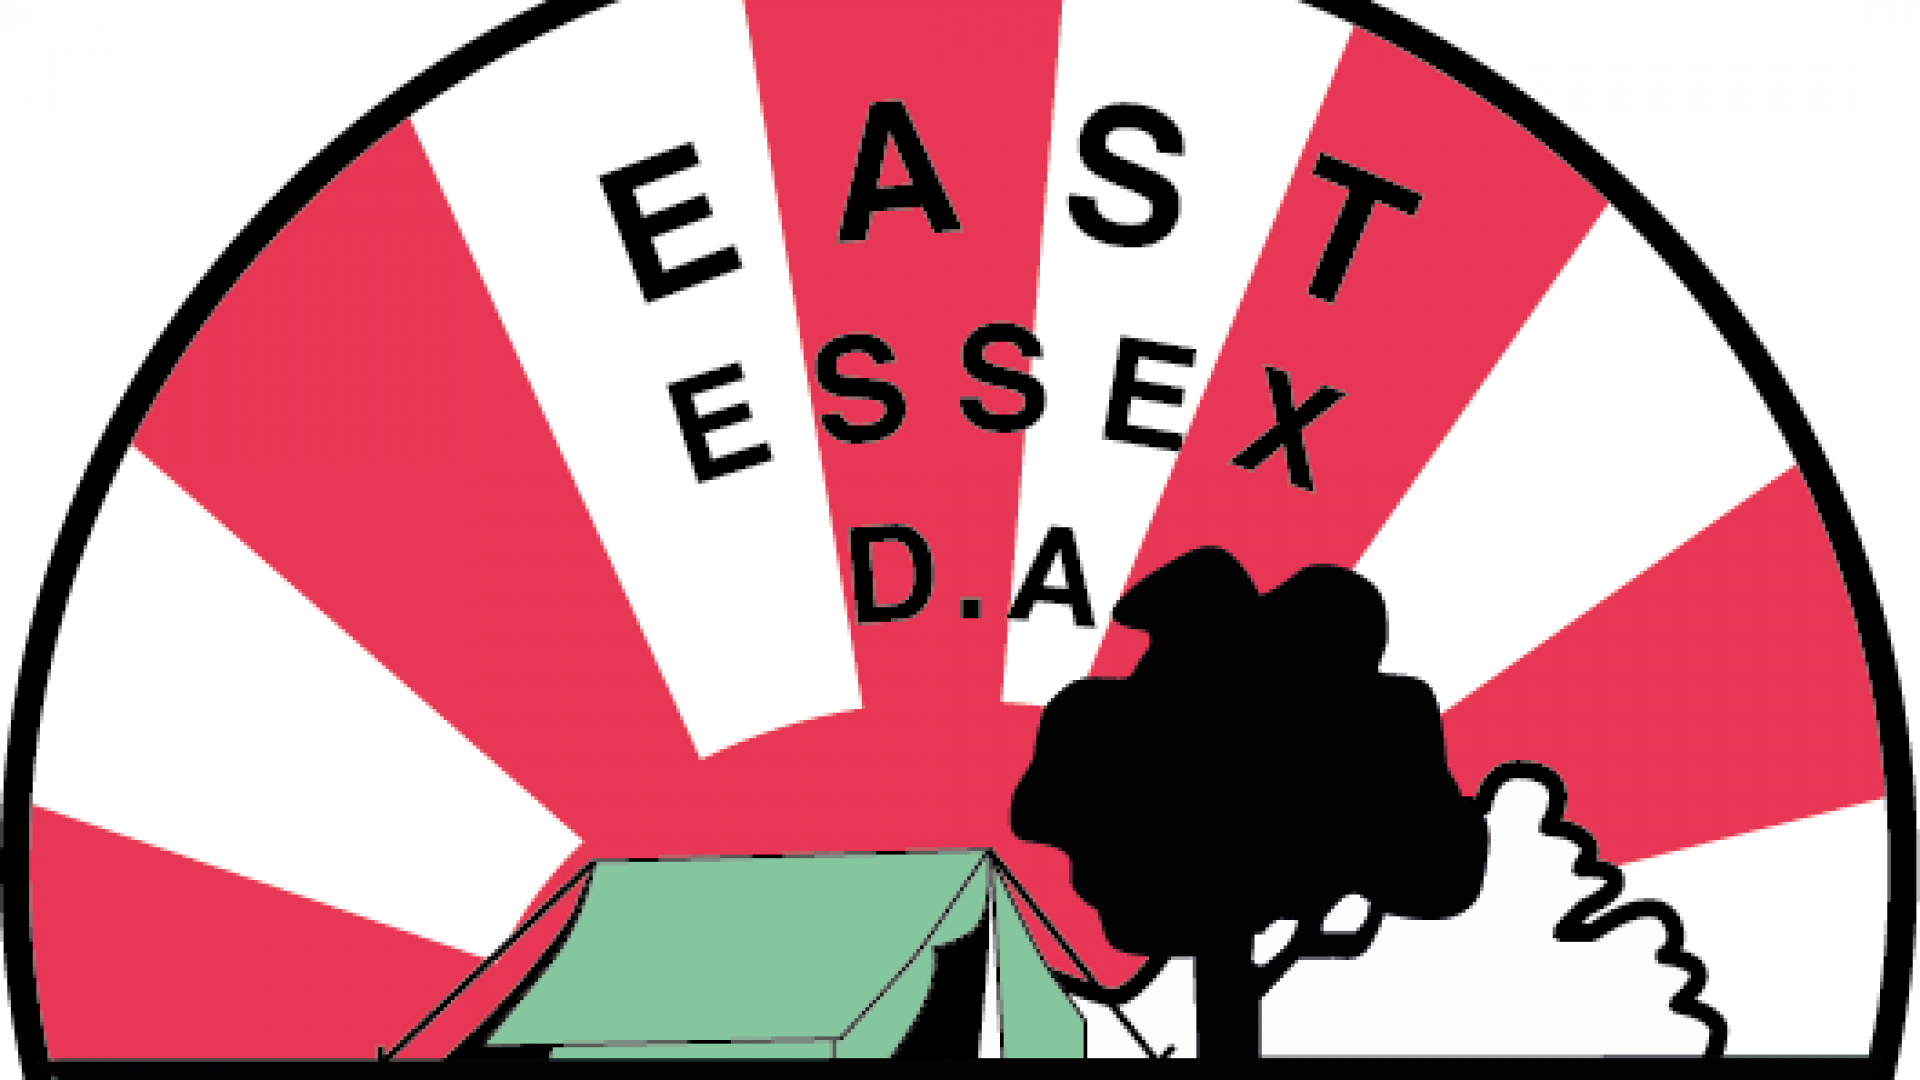 East Essex District Association